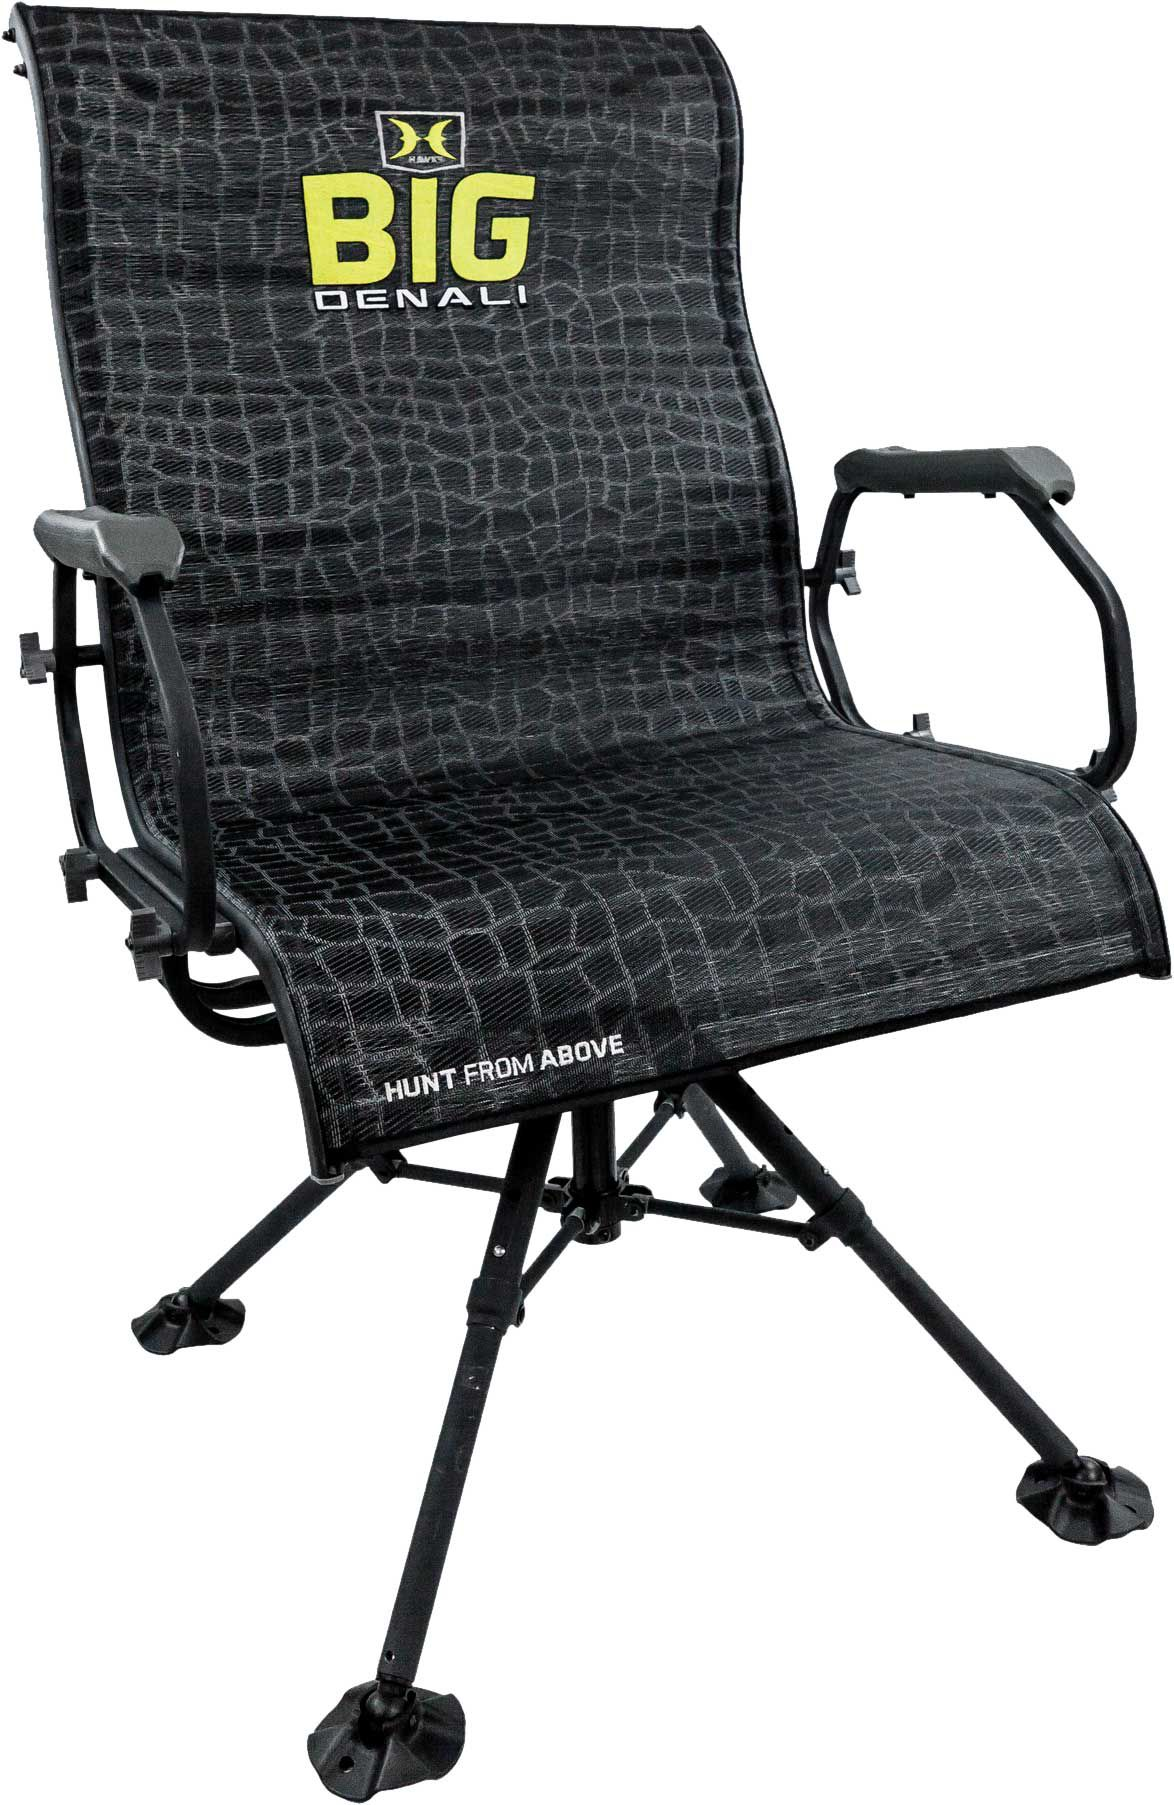 duck blind chair wing chairs for sale hunting seats stools best price guarantee product image hawk big denali